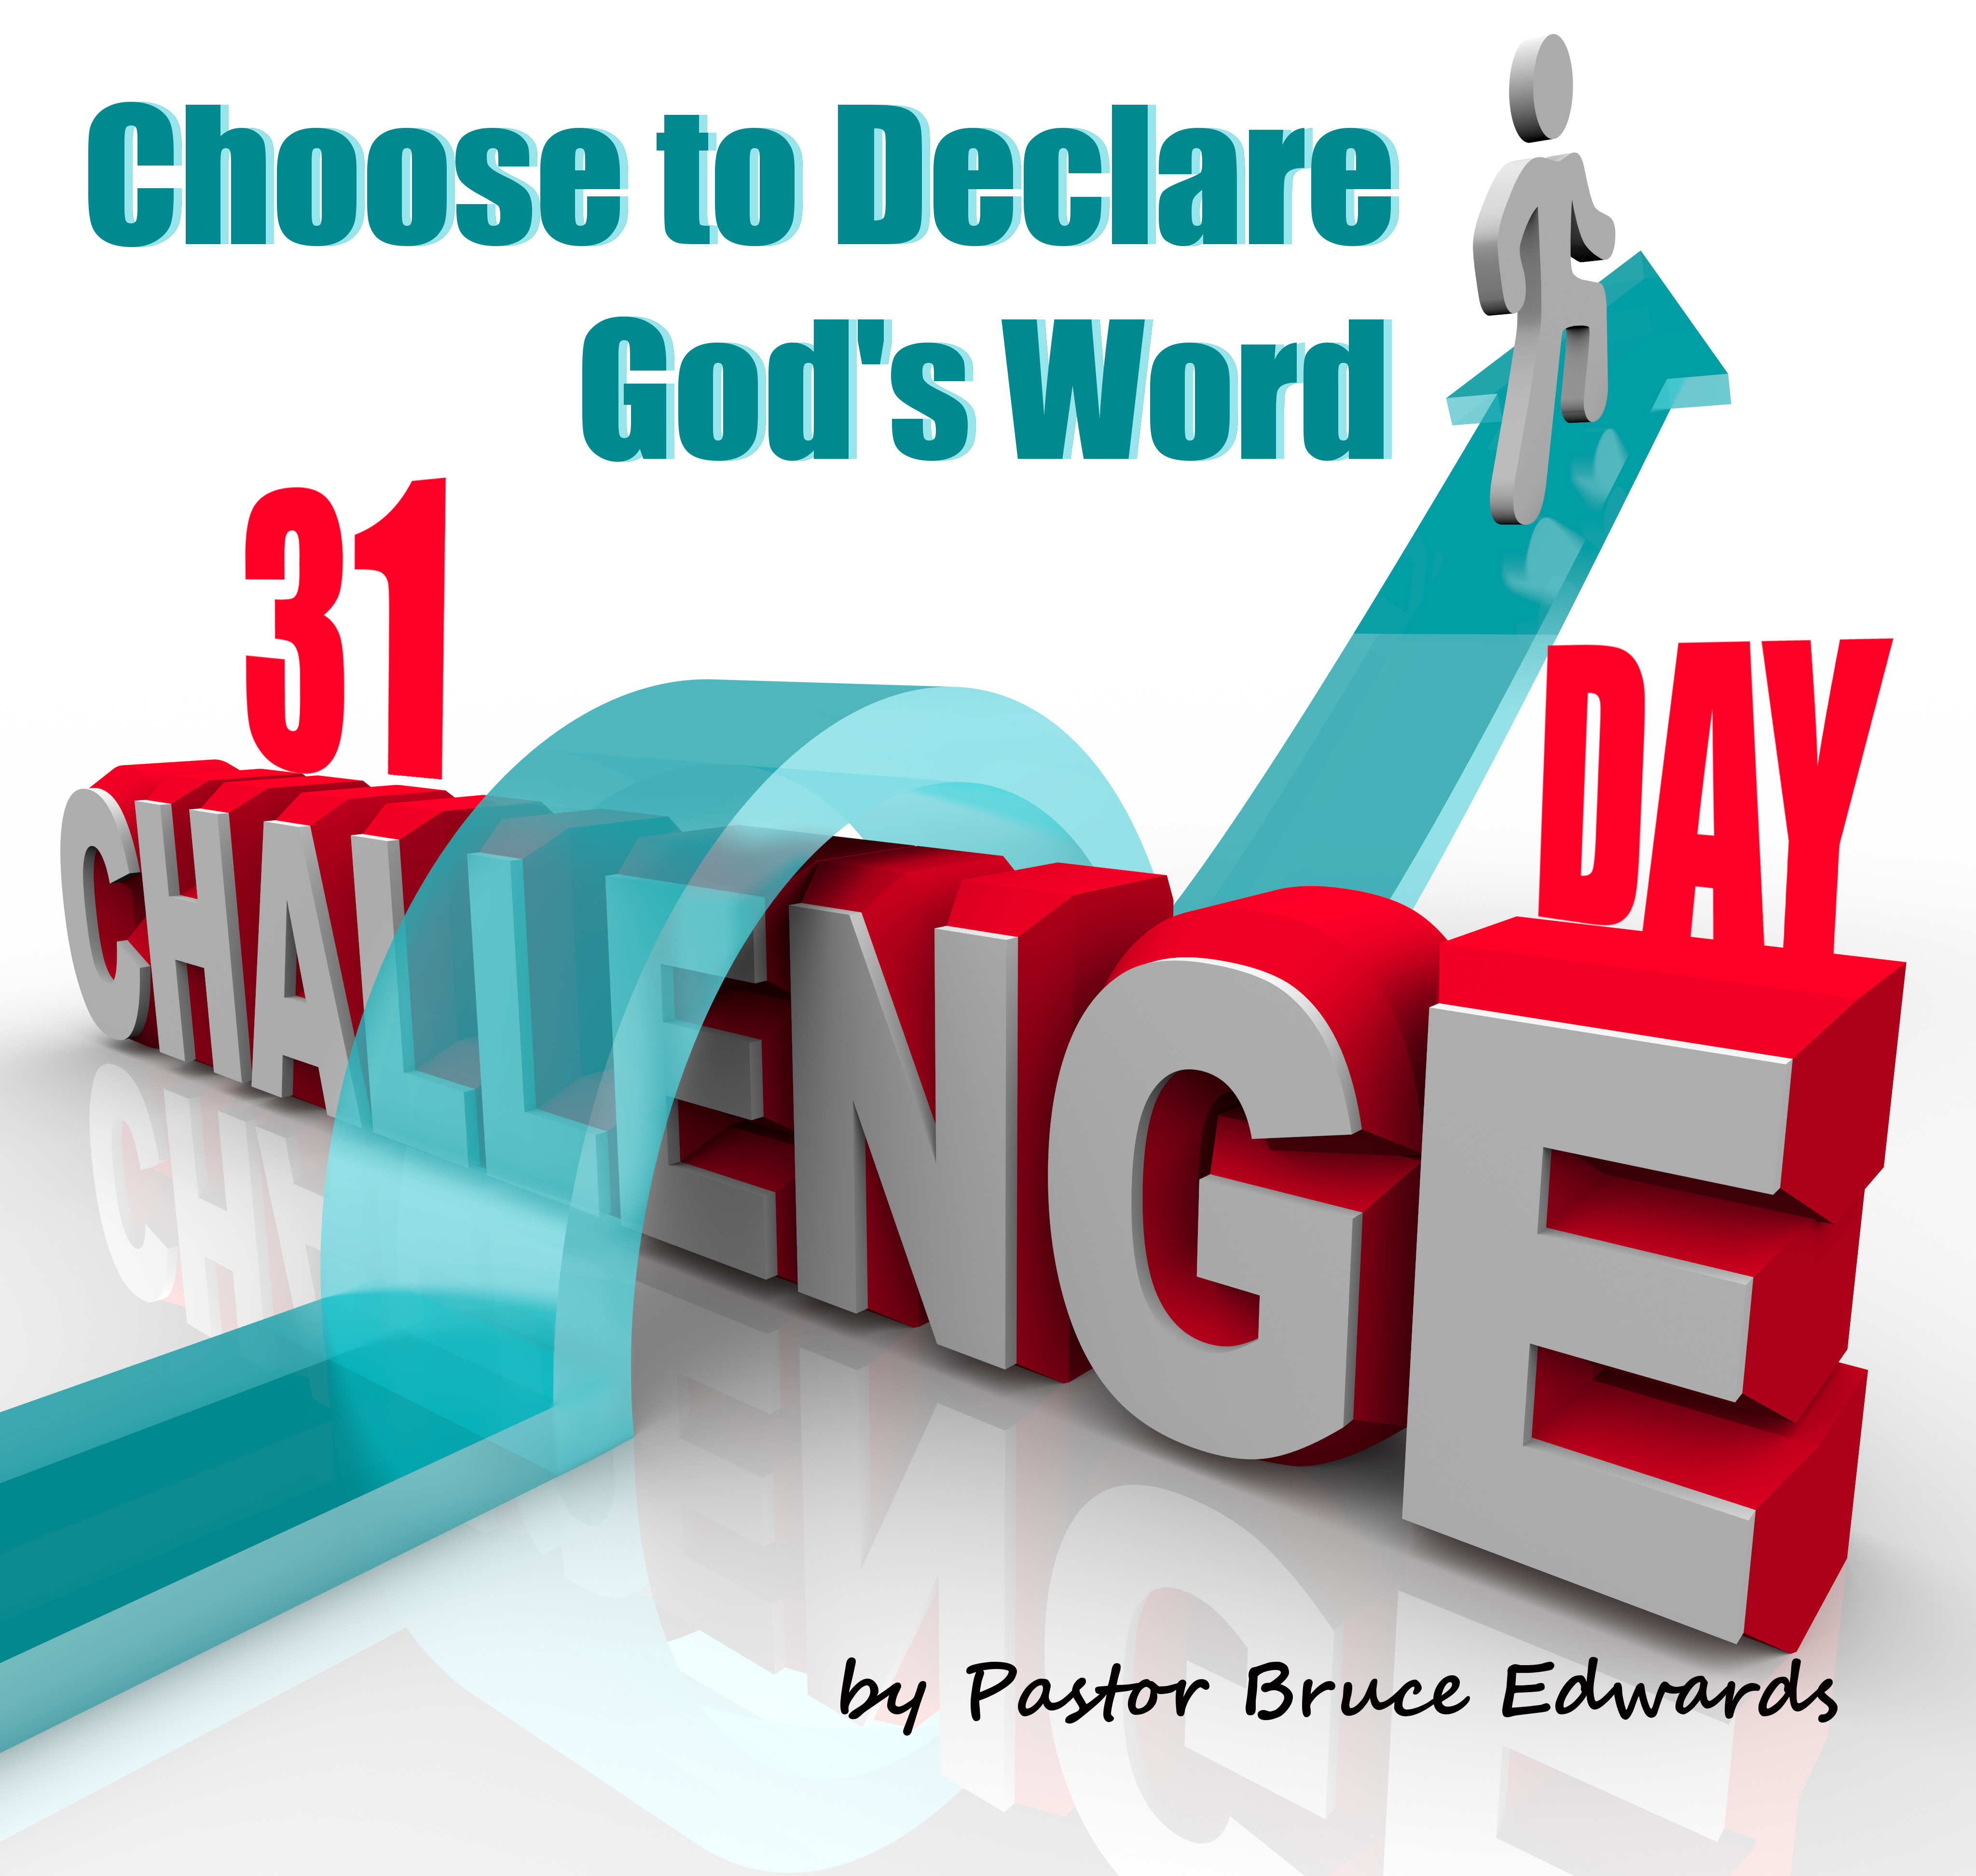 31 declarations of God's Word by pastor bruce edwards